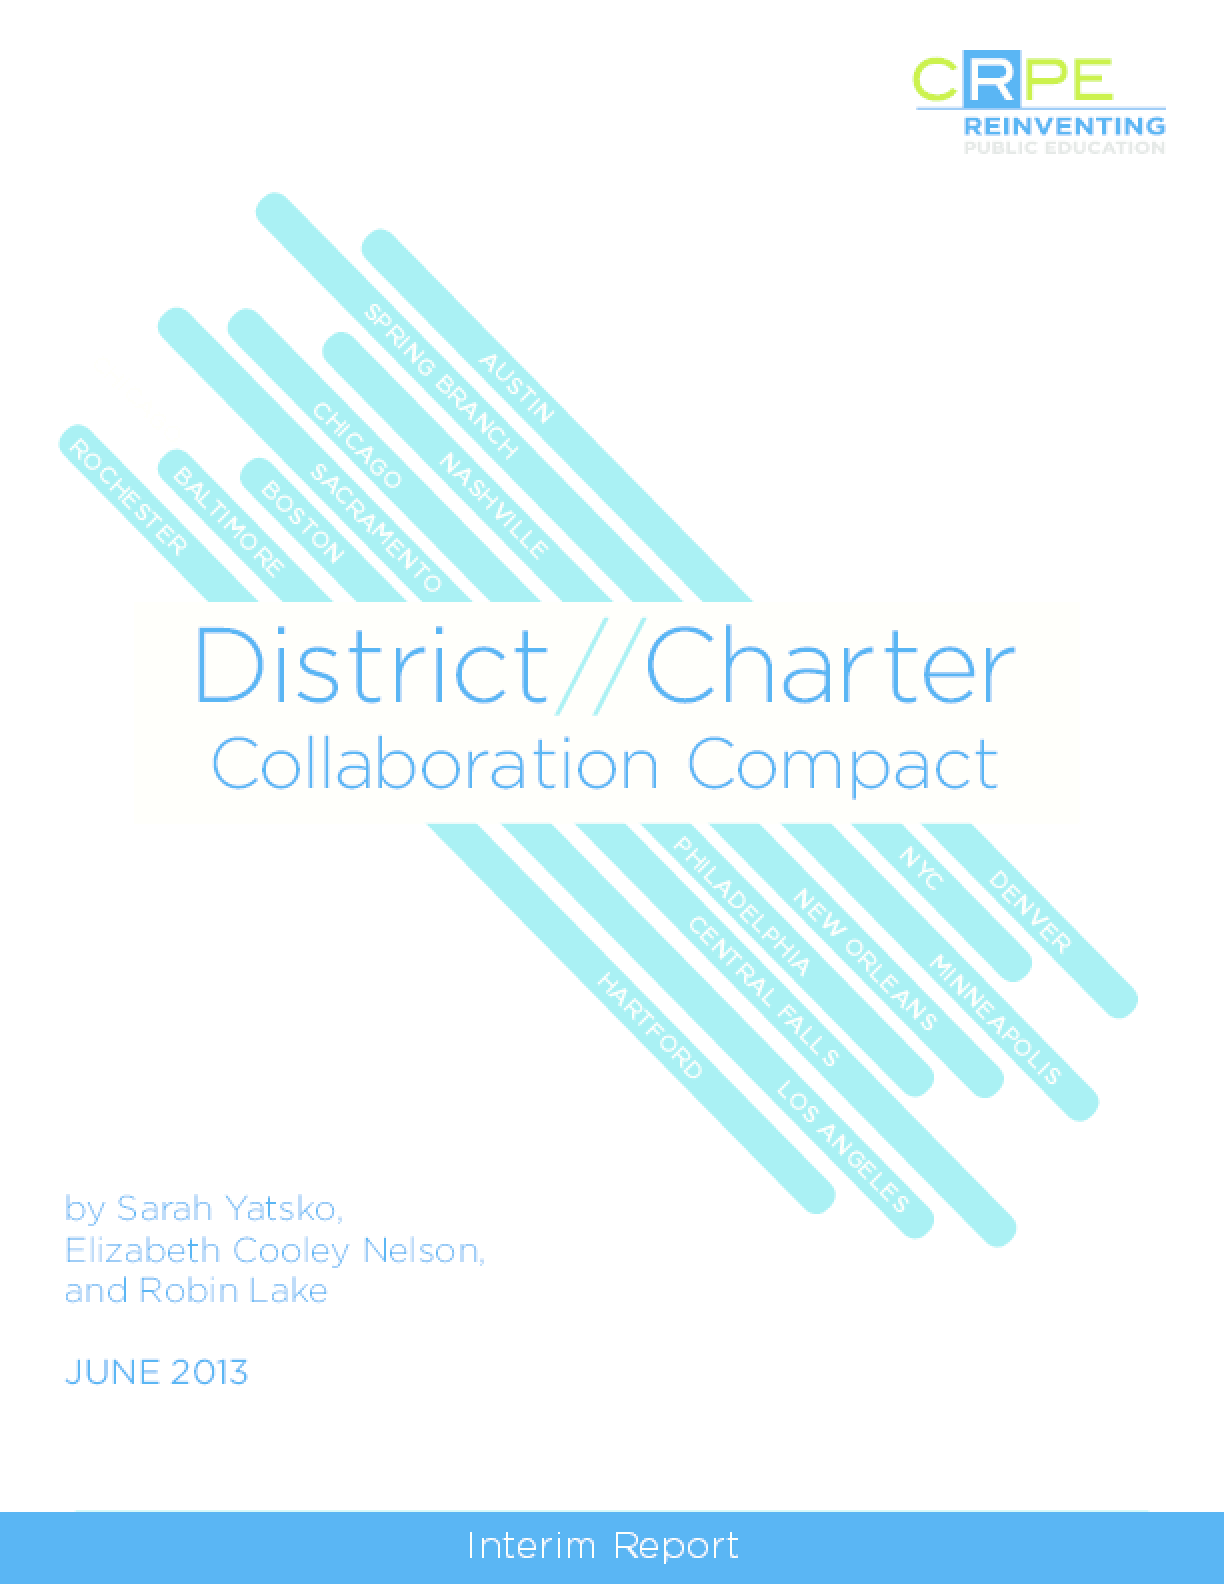 District-Charter Collaboration Compact: Interim Report